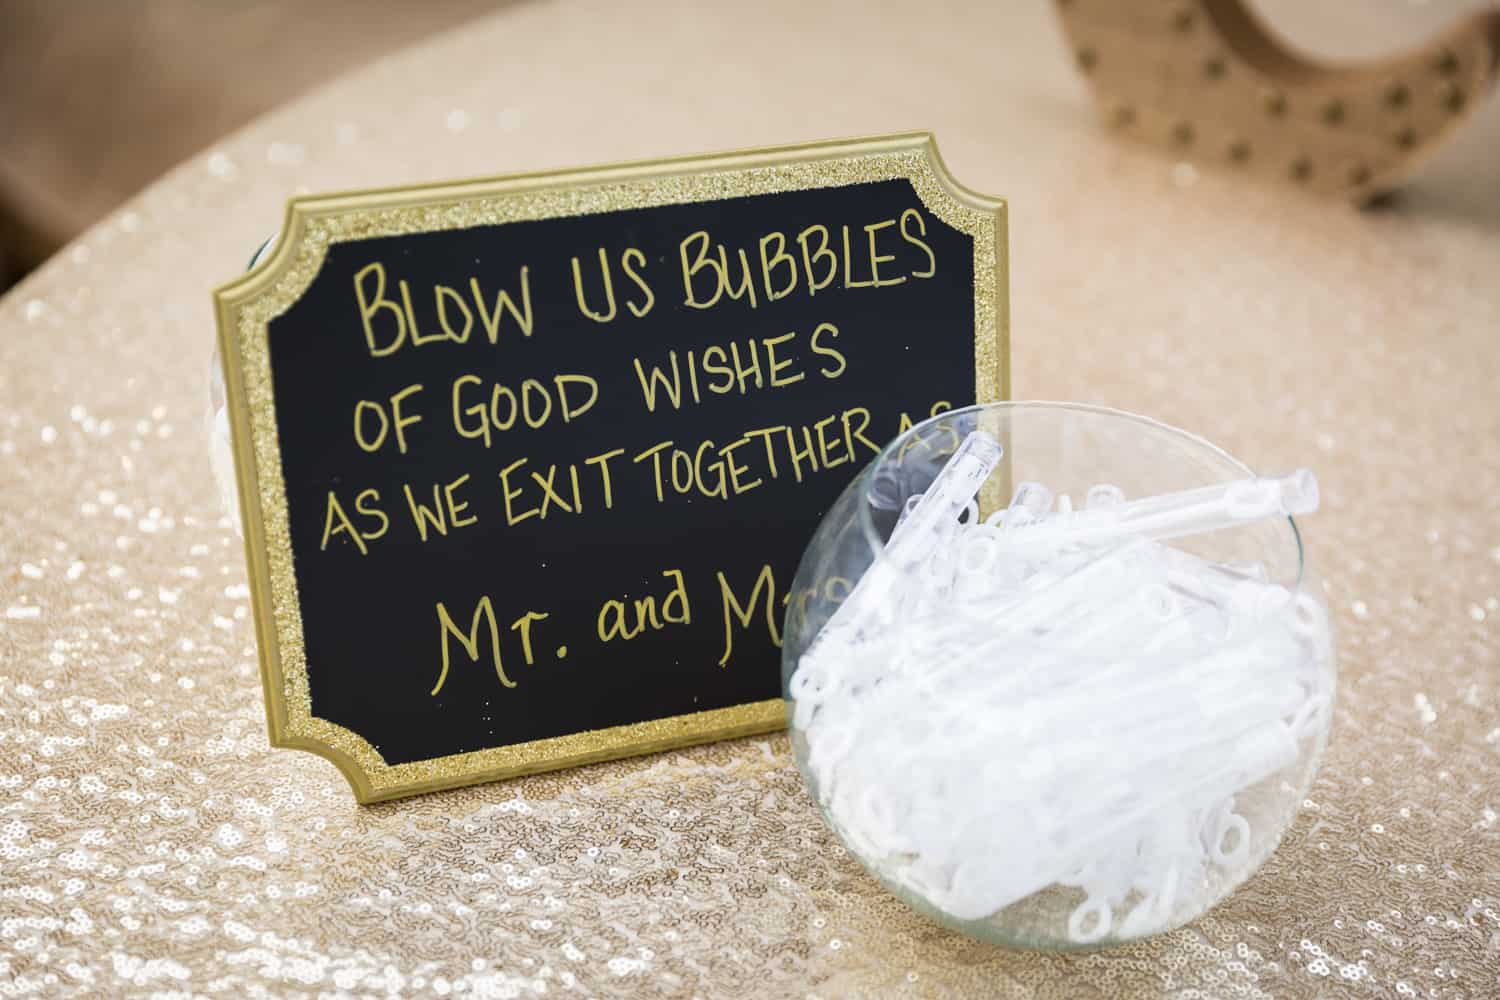 Bowl of bubbles with sign for guests